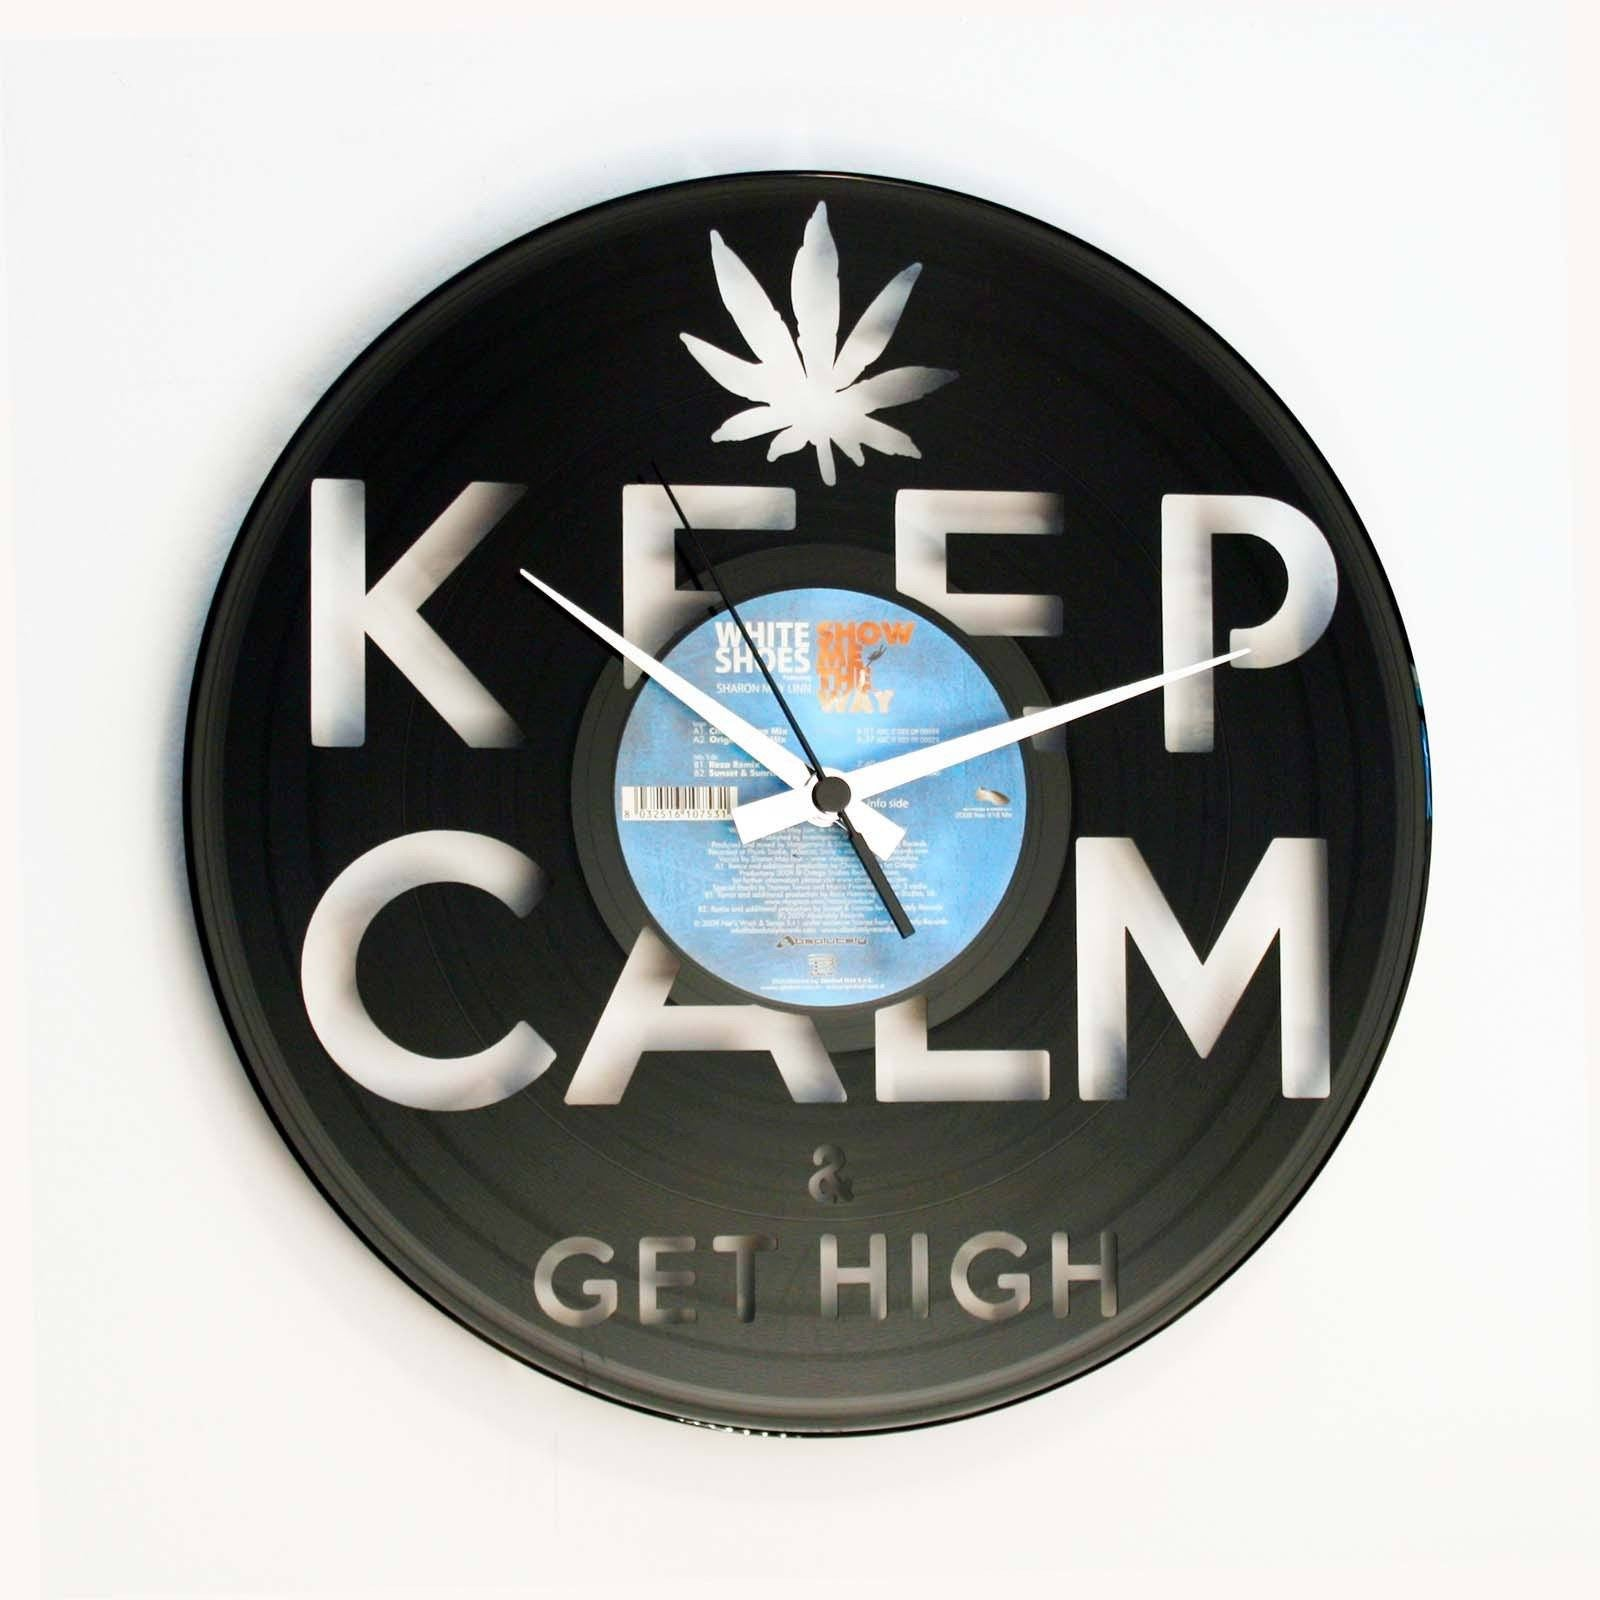 DISC'O'CLOCK Vinyl Record Keep Calm Get High Wall Clock 30cm DOC054